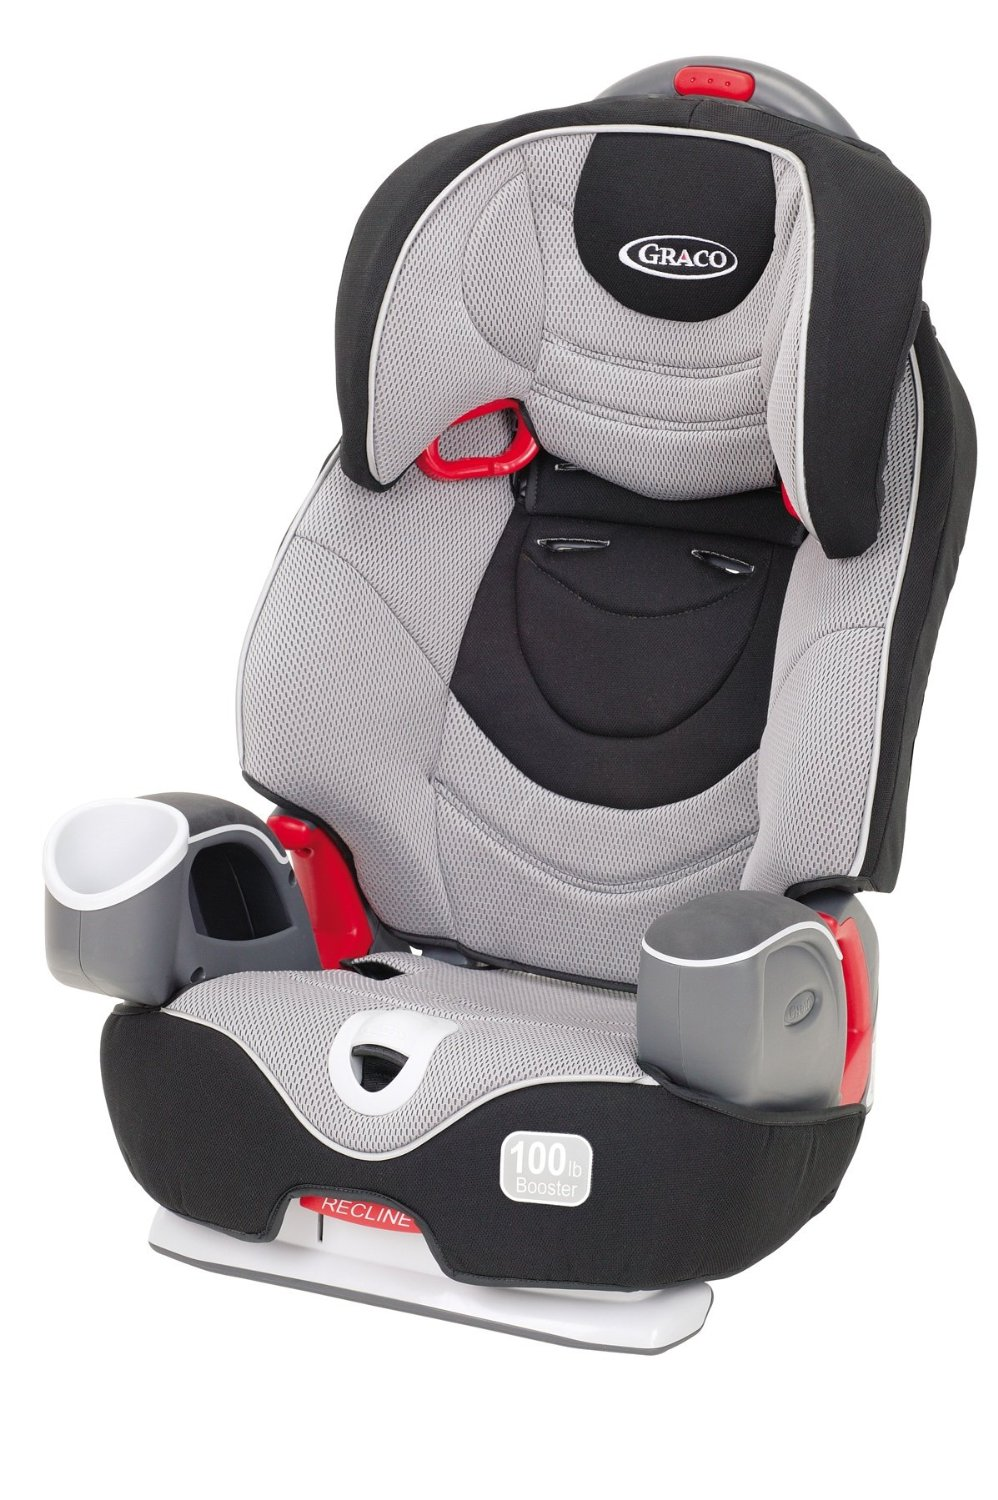 Graco Nautilus 3 In 1 Car Seat With Safety Surround >> graco nautilus 3 in 1 car seat instructions | Brokeasshome.com